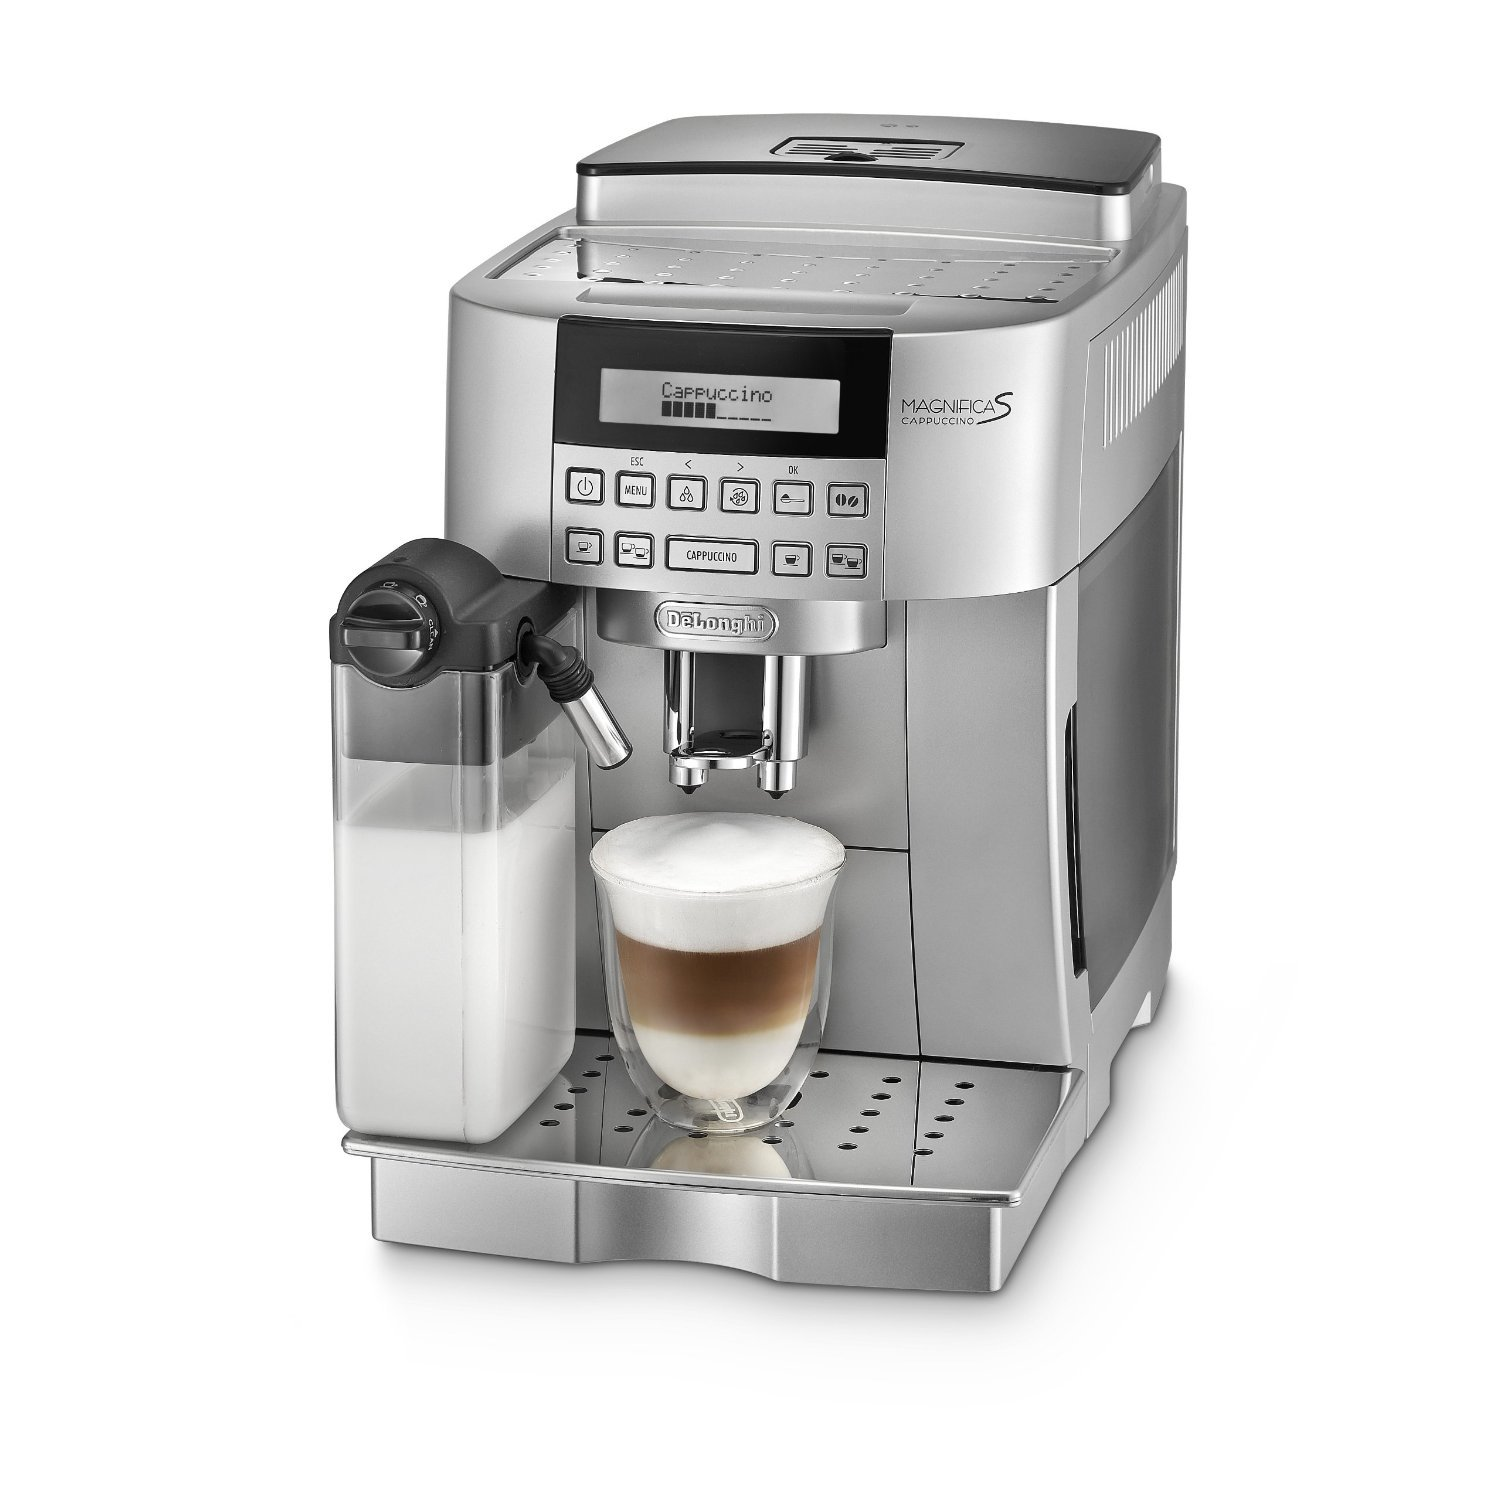 Electronic Test Cases For Coffee Machine delonghi ecam22 360 s fully automatic bean to cup coffee machine 220 w amazon co uk business industry science